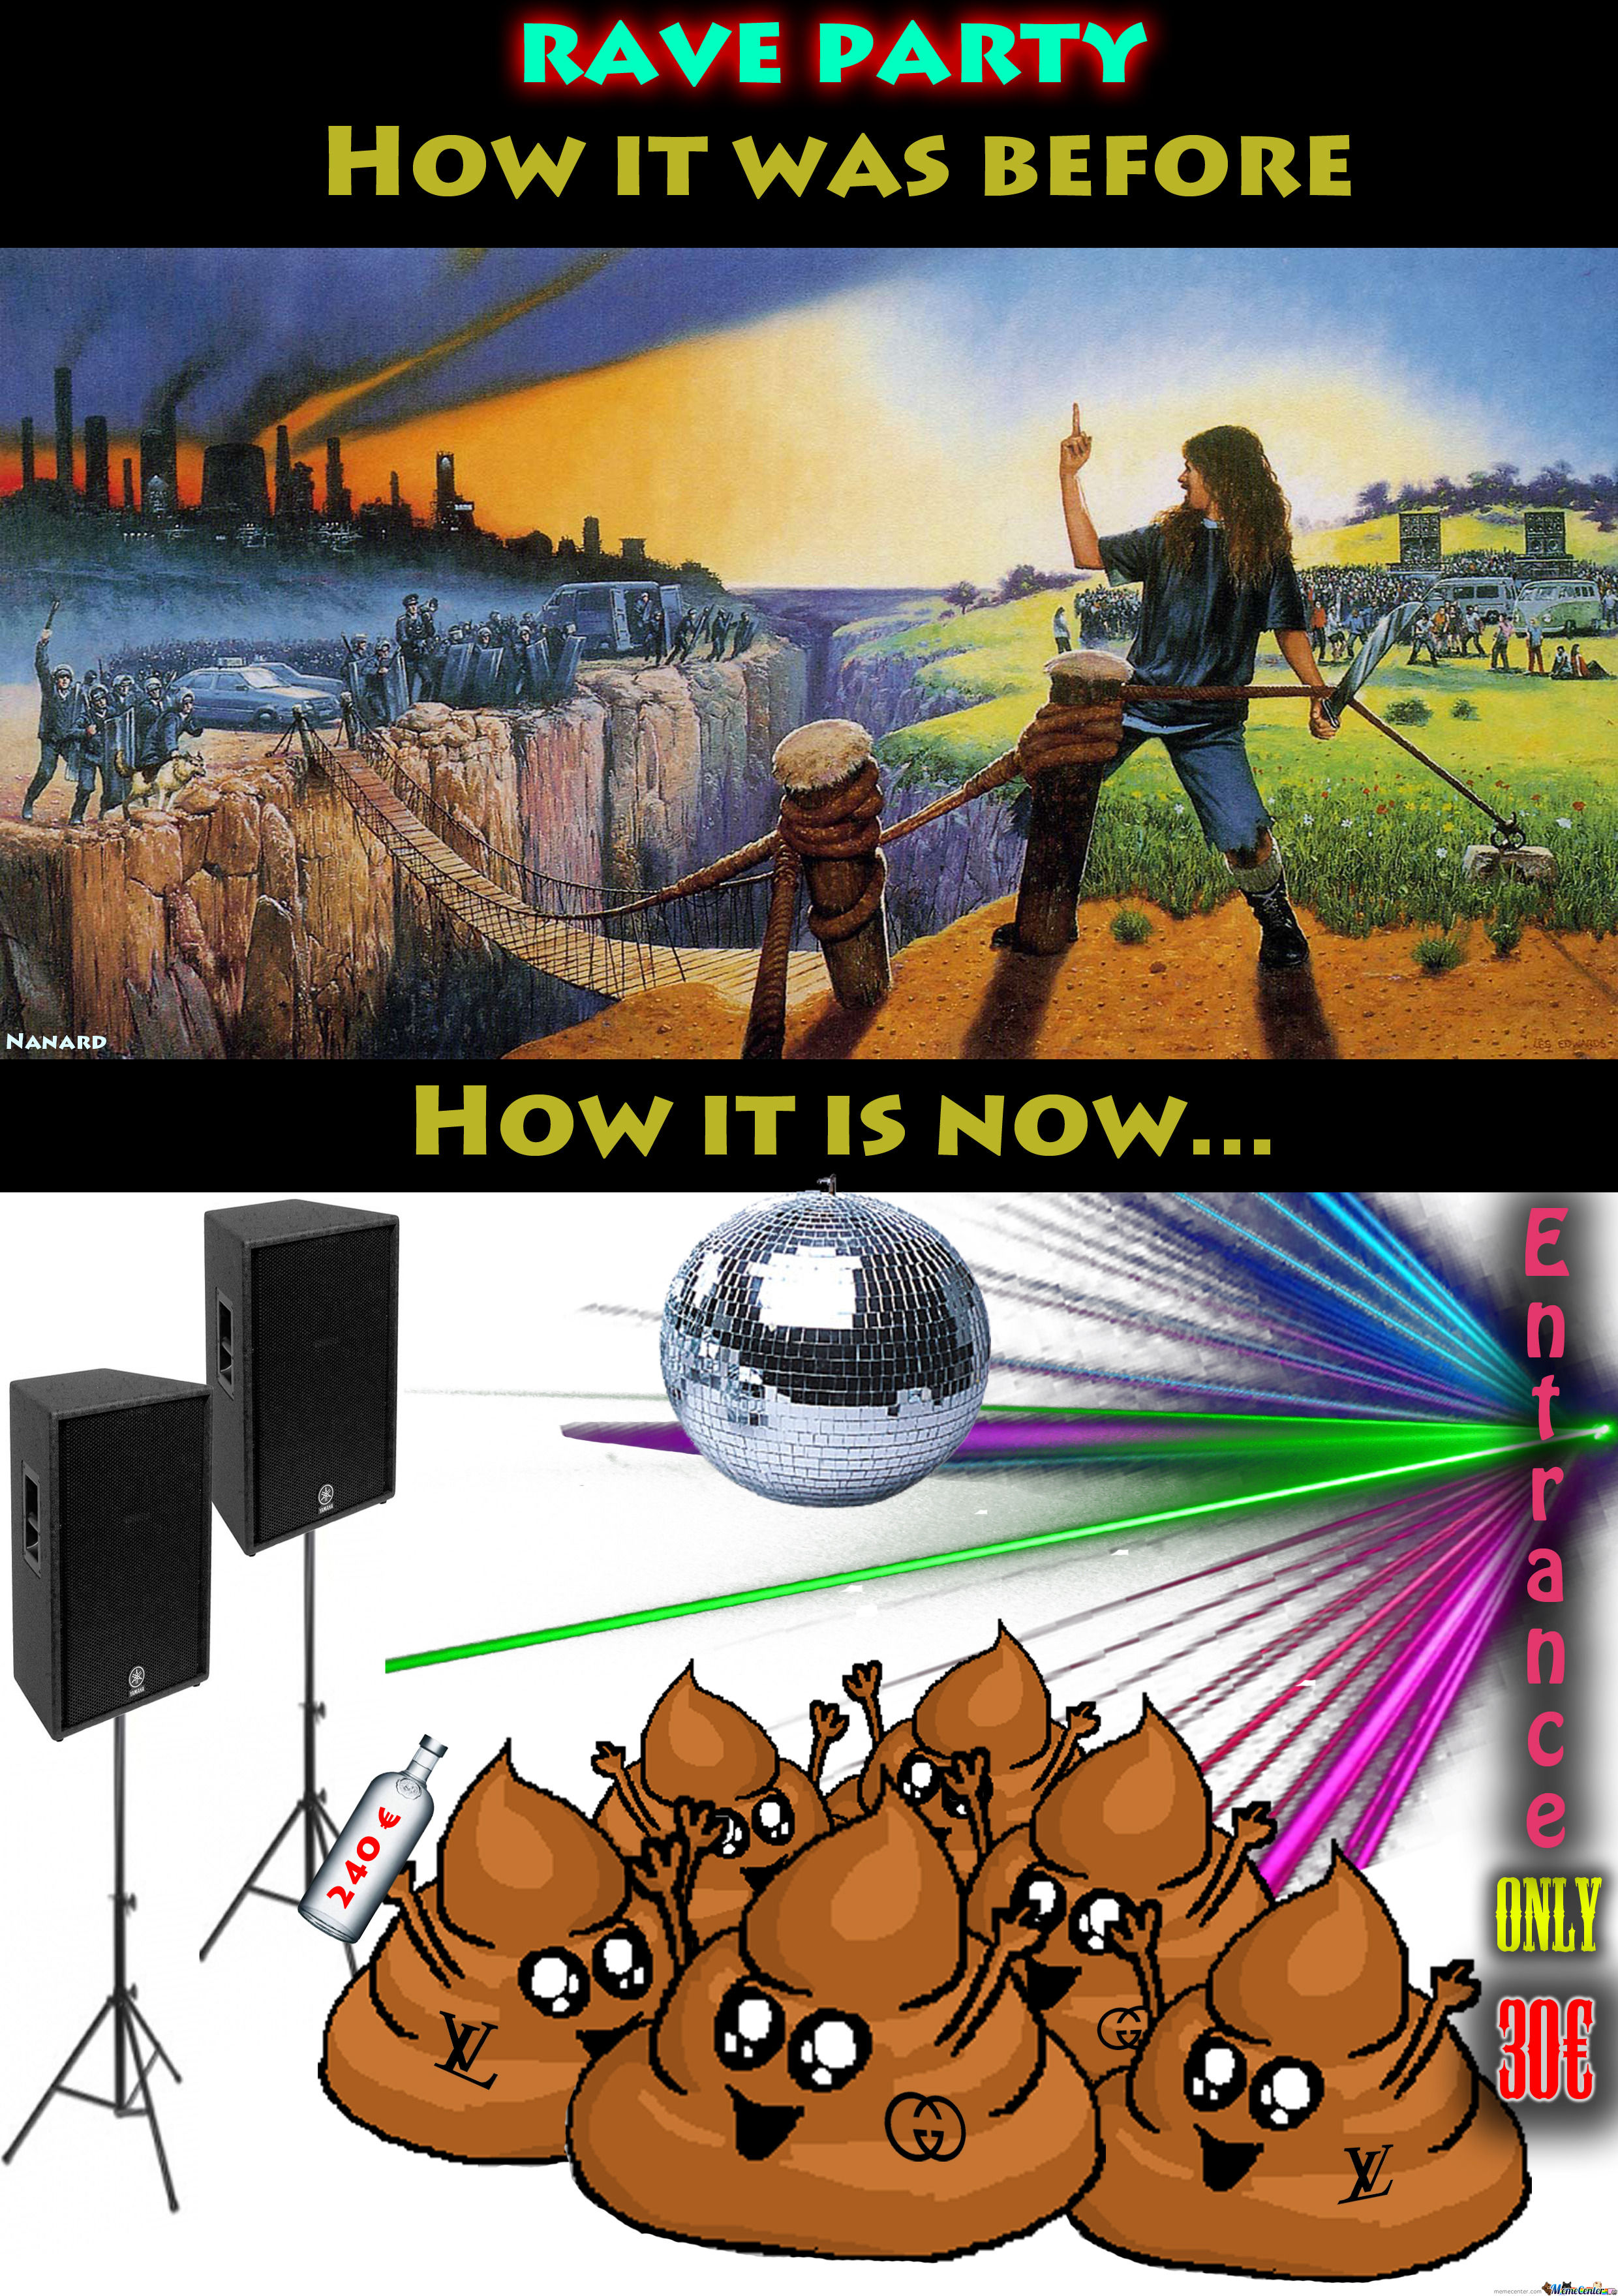 Rave Party - Before Vs Now